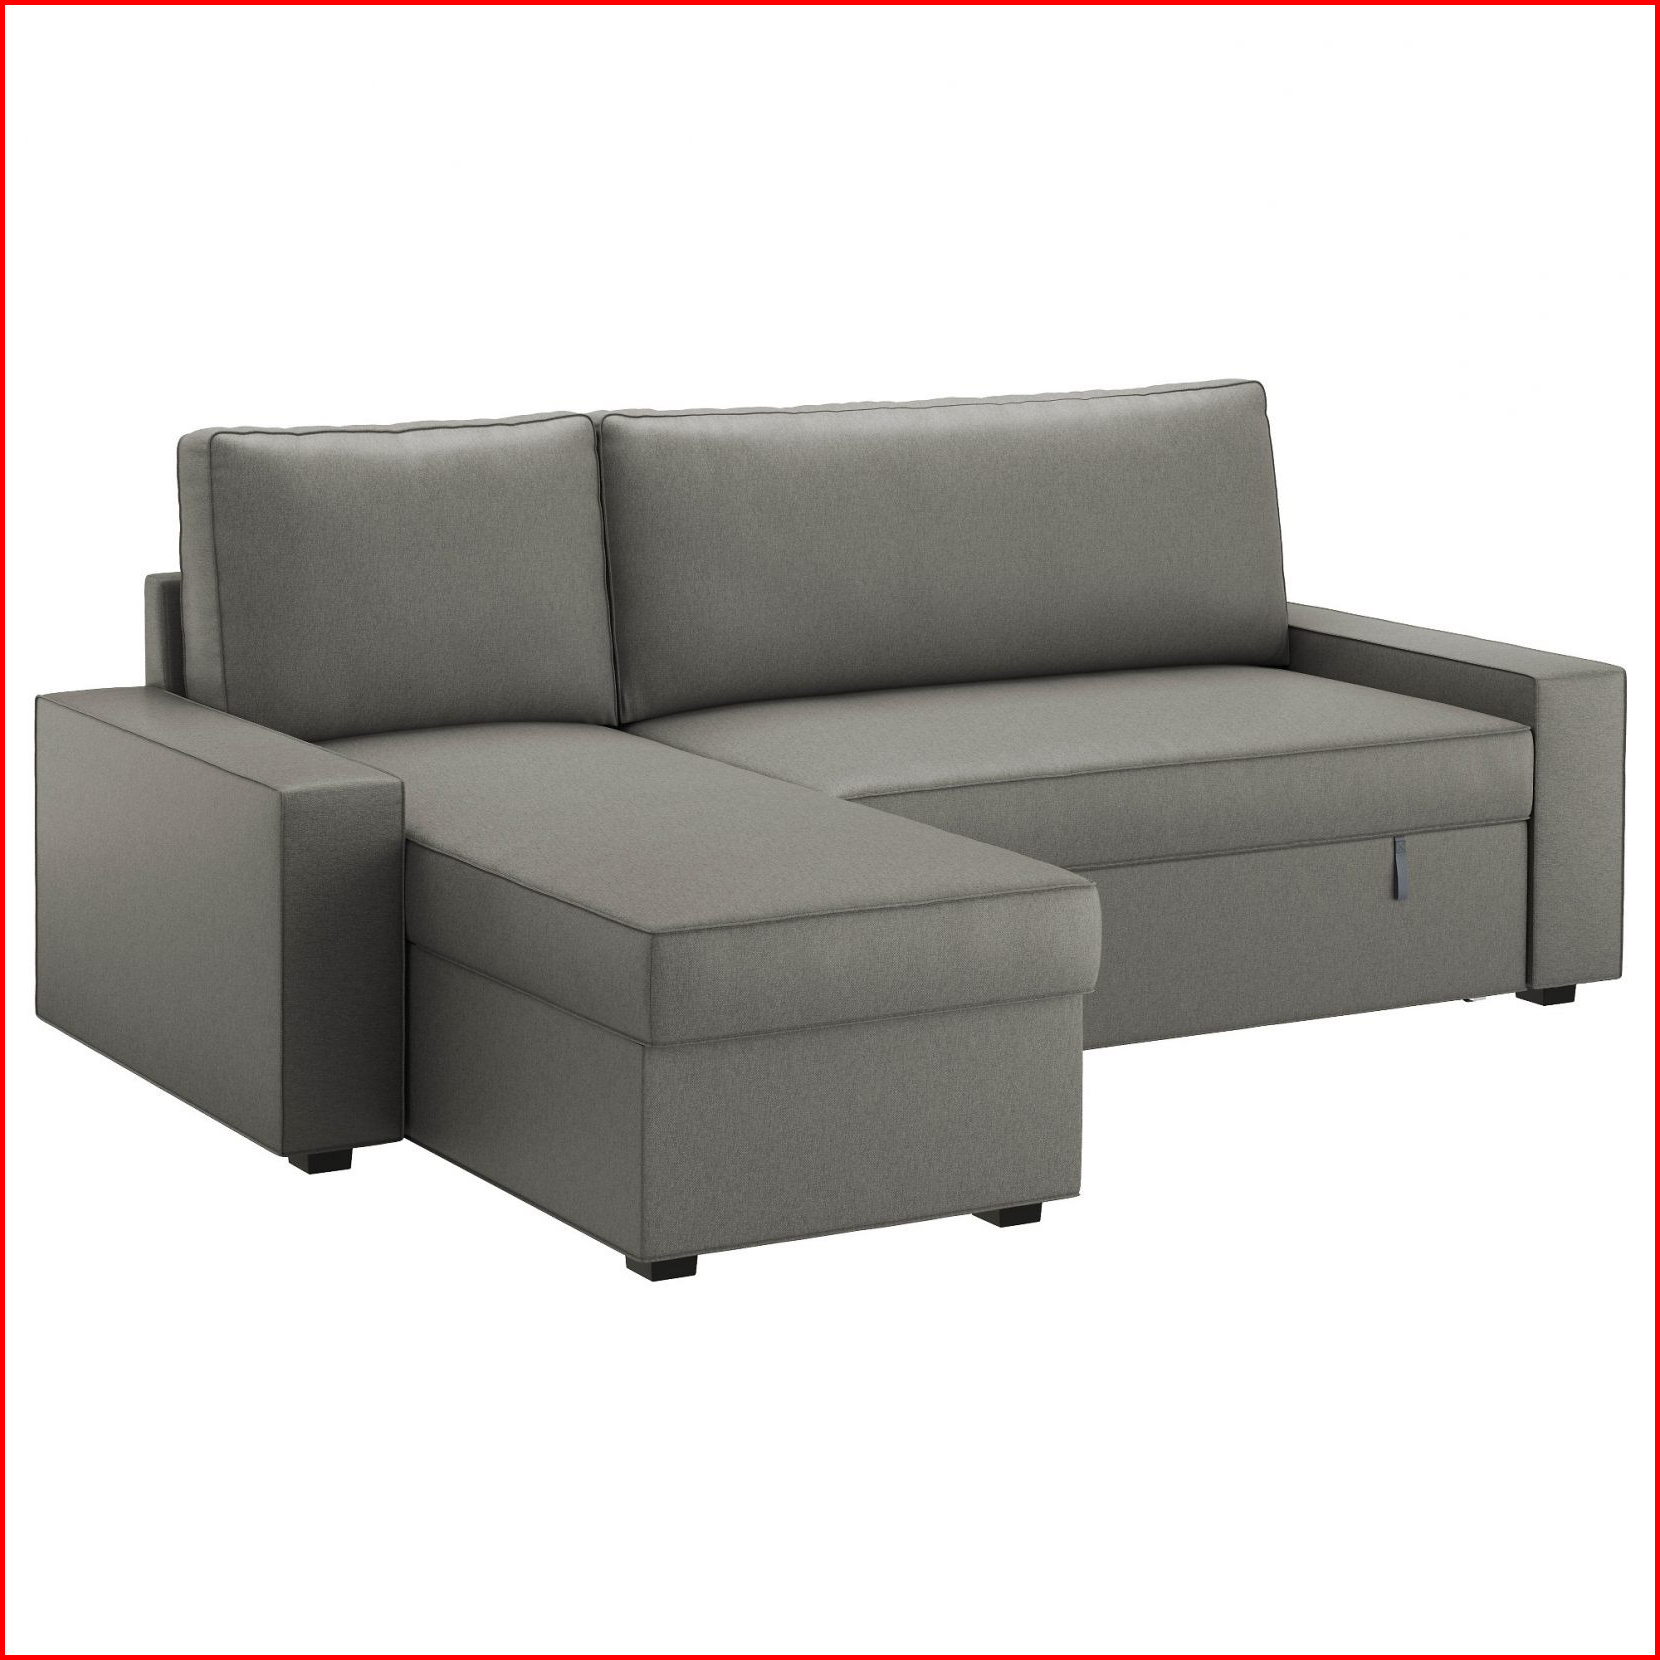 Conforama sofas Cheslong Whdr Chaise Longue Conforama Useful Chaise Longue Pronunciation In